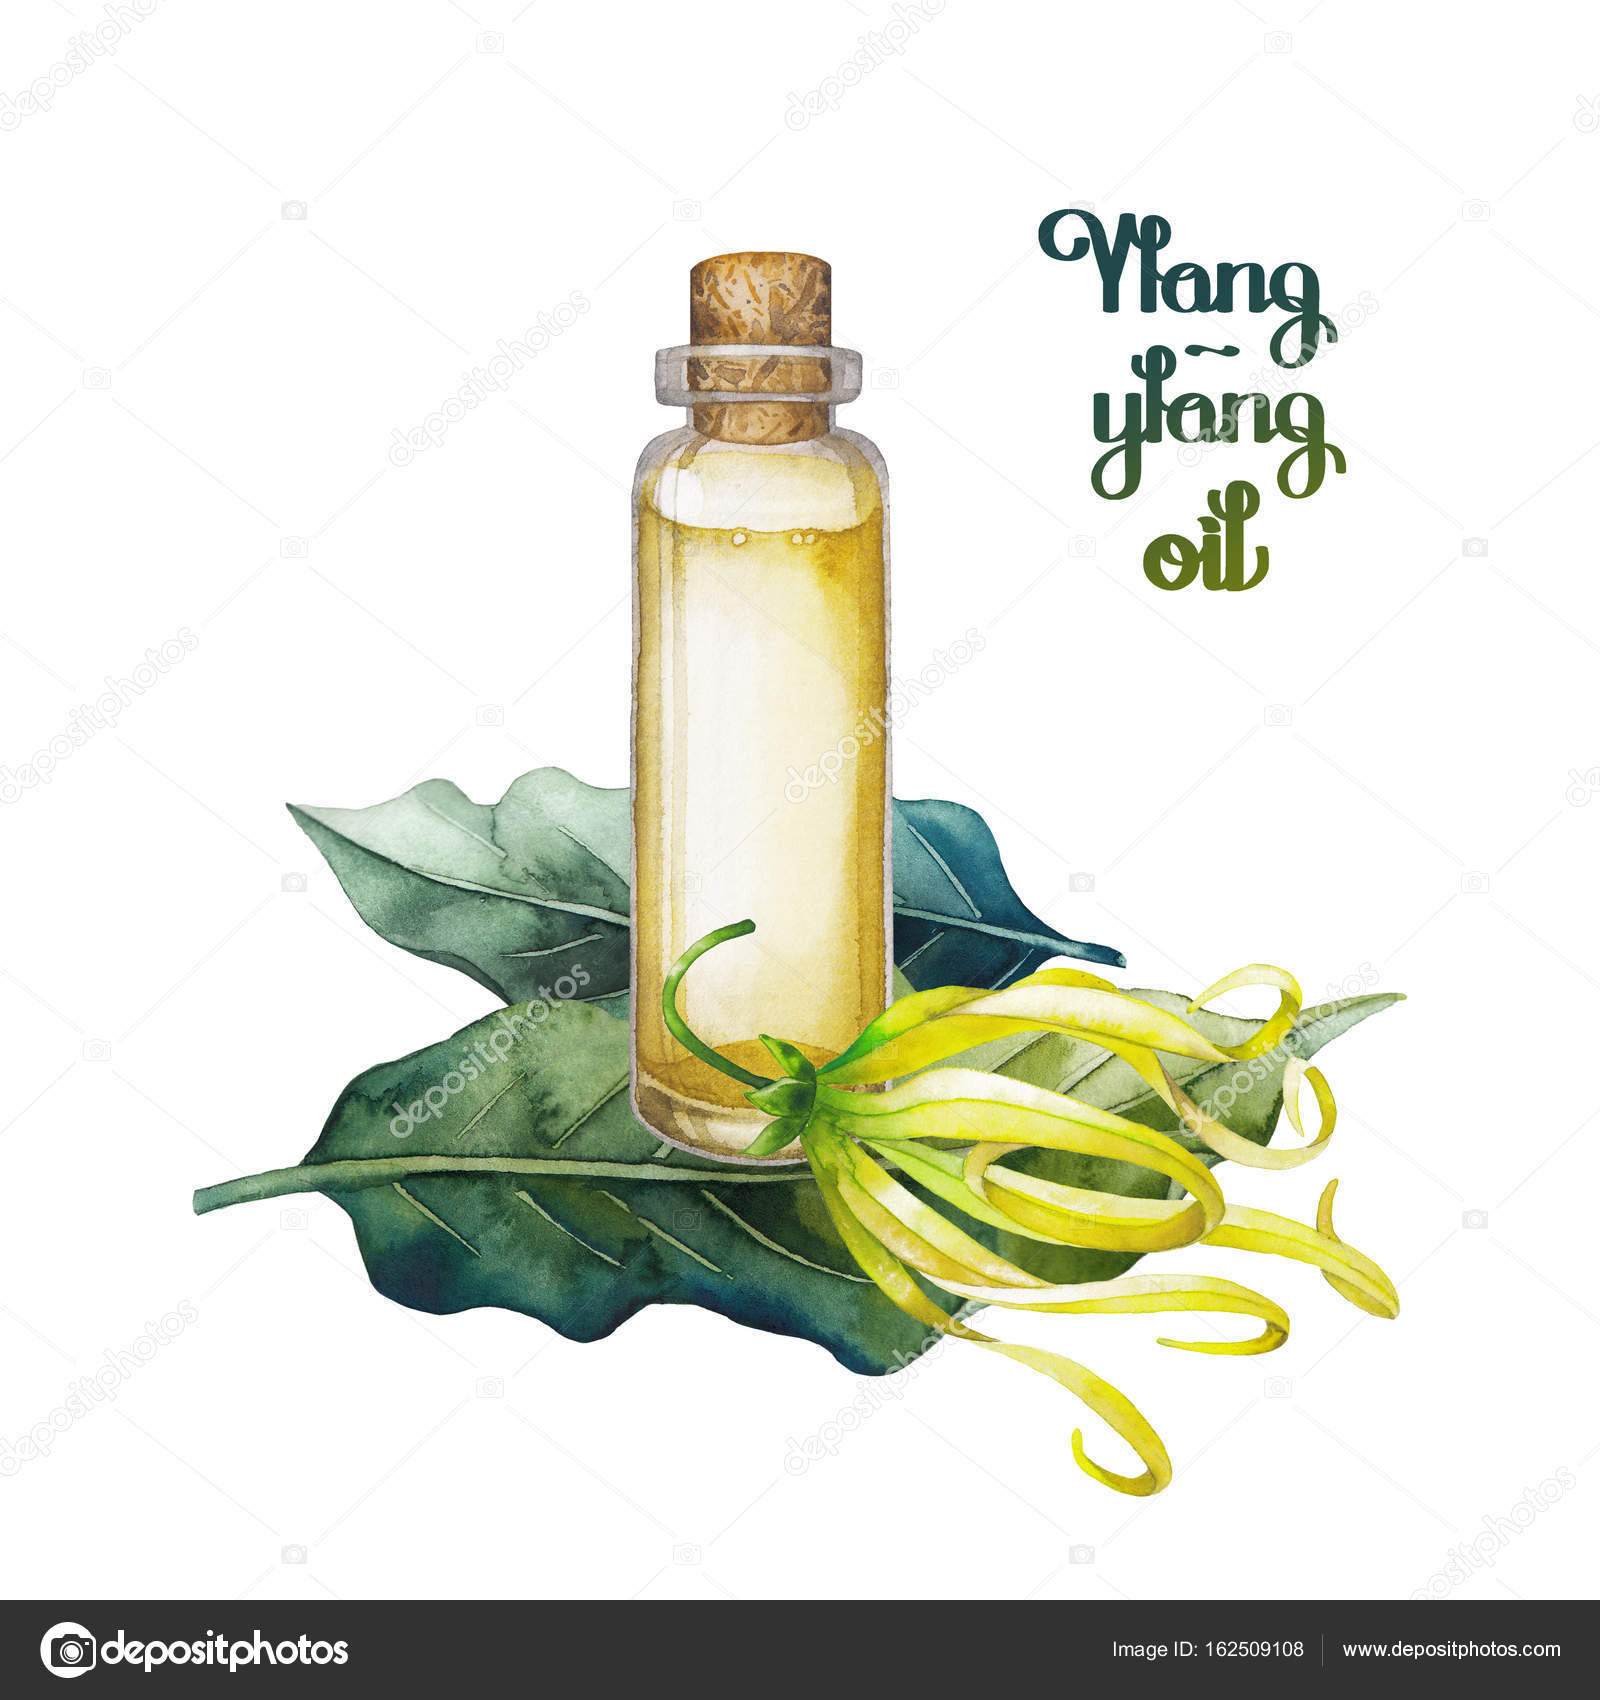 Watercolor ylang ylang oil stock photo homunkulus28 162509108 watercolor ylang ylang oil hand painted bottle leaves and flowers isolated on white background herbal medicine and aroma therapy photo by homunkulus28 mightylinksfo